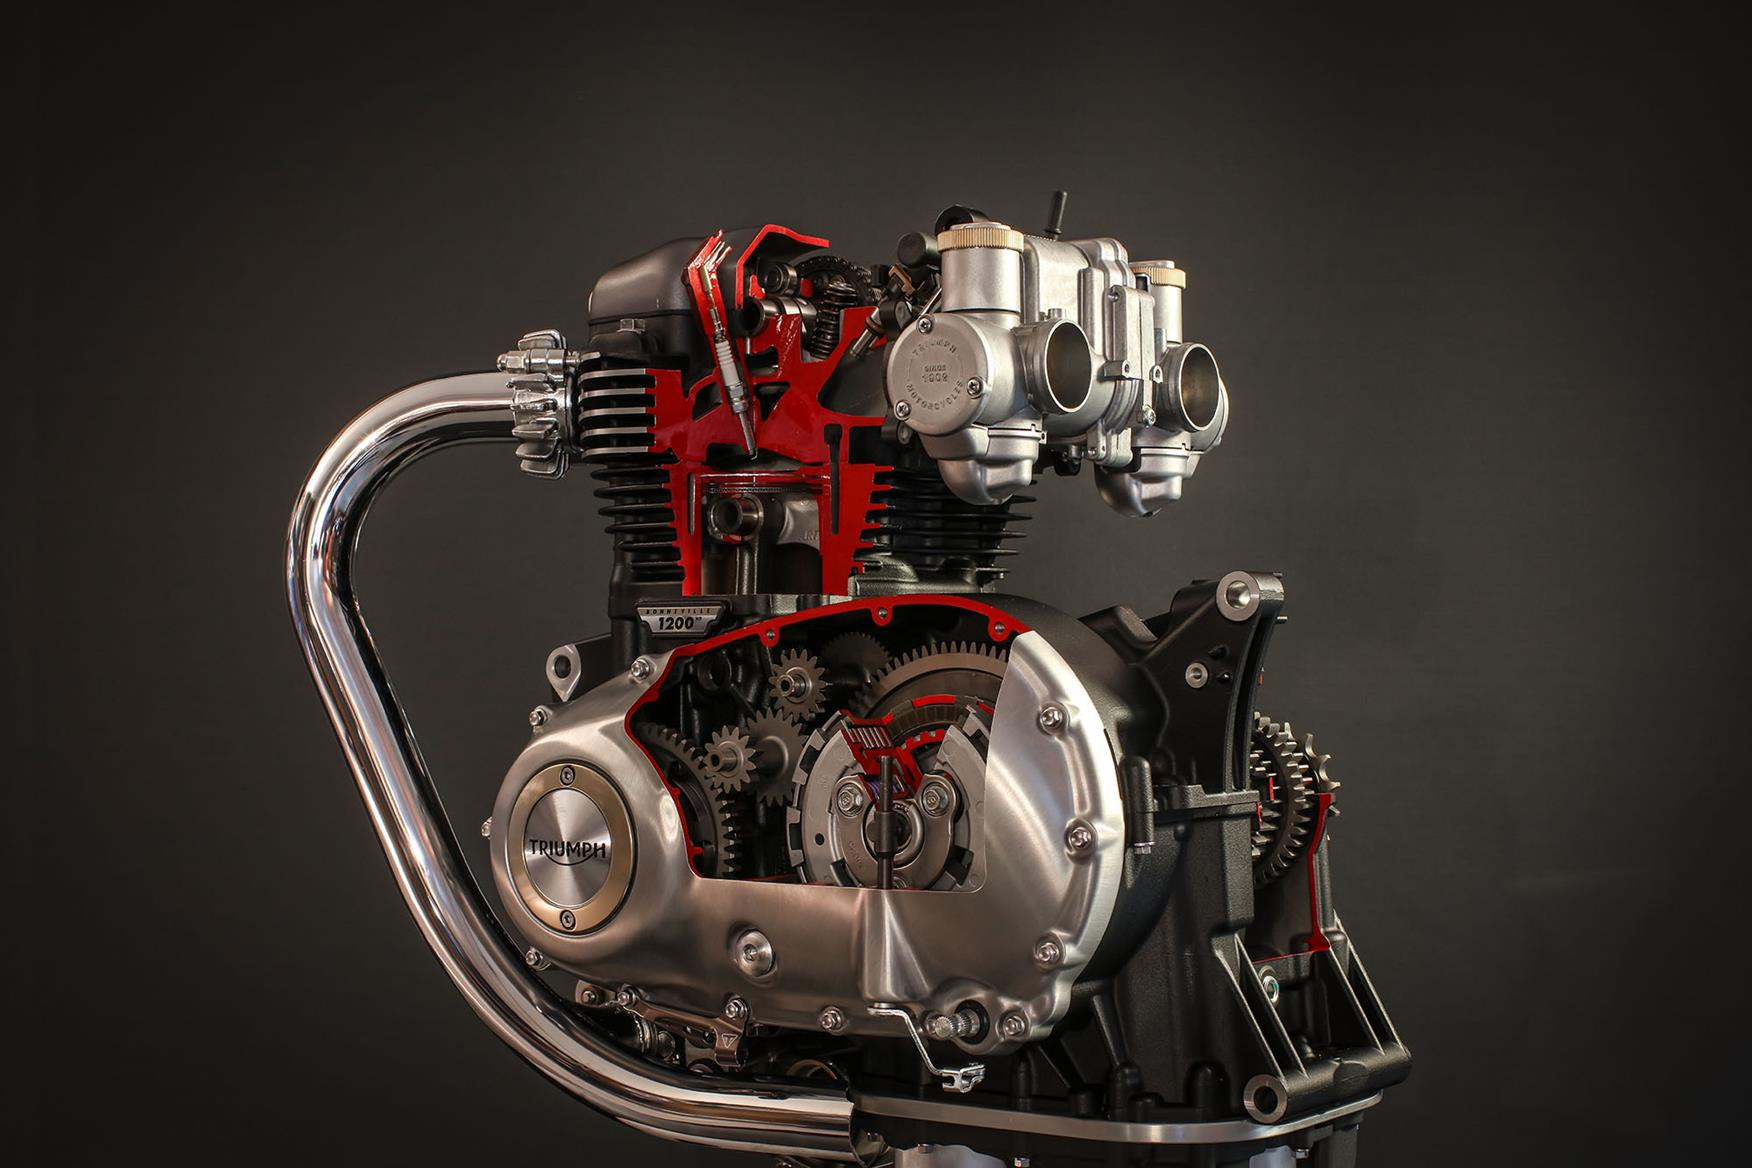 A cross-section of Triumph's 1200cc parallel-twin engine